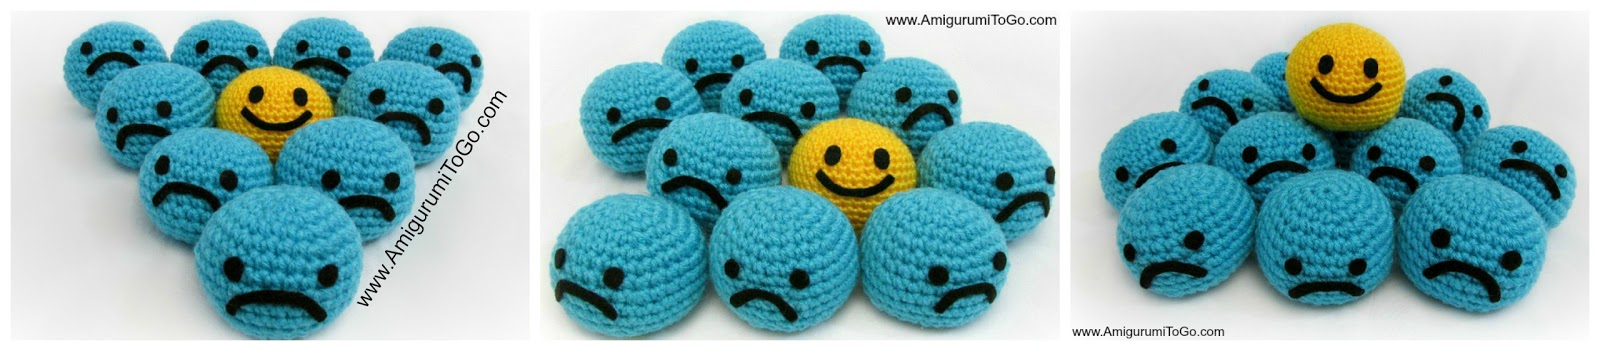 Free Crochet Ball Pattern Images Knitting Patterns Free Download